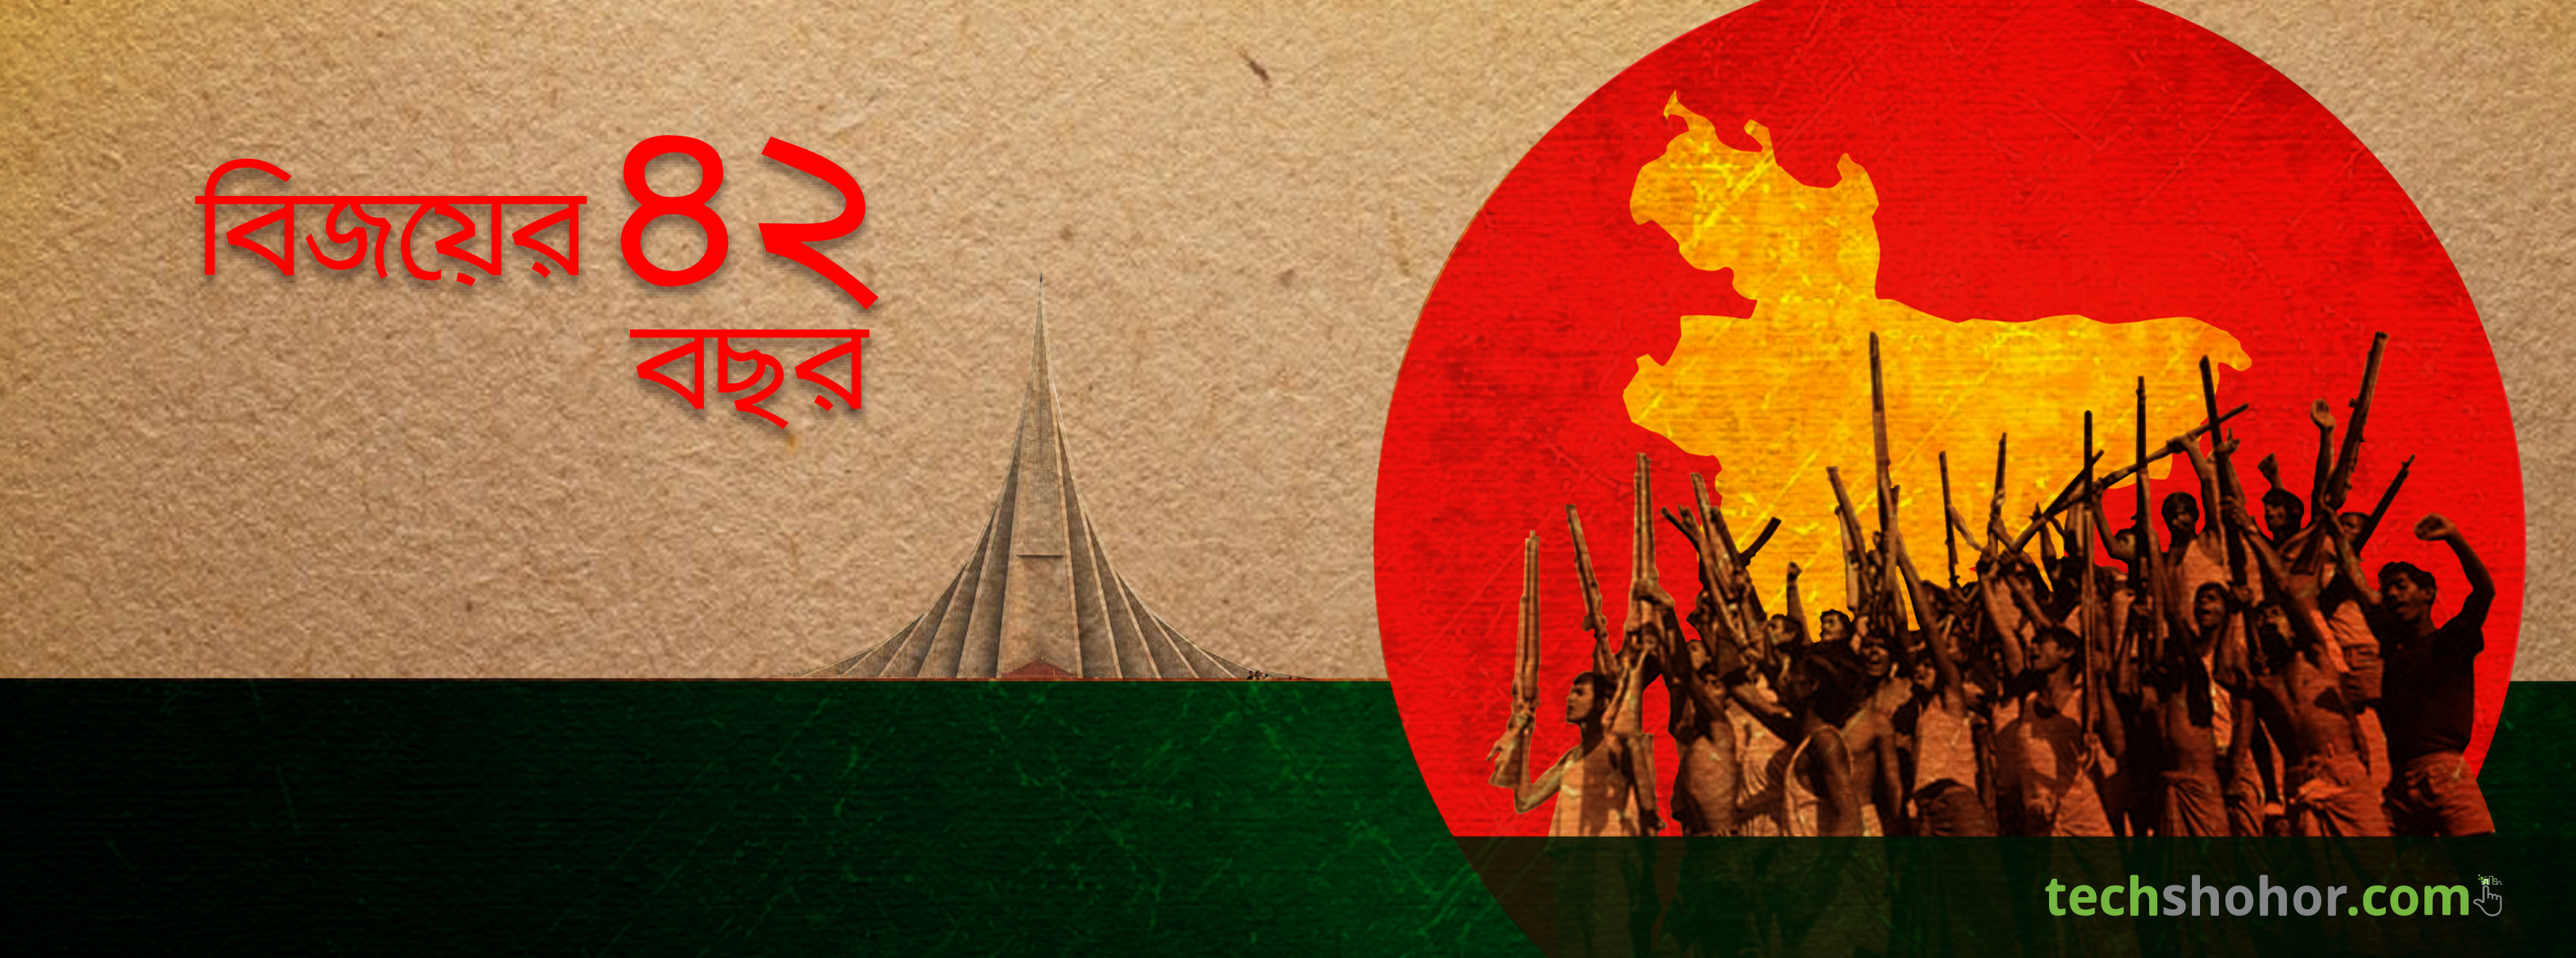 Victory Day Final Cover Page (1)